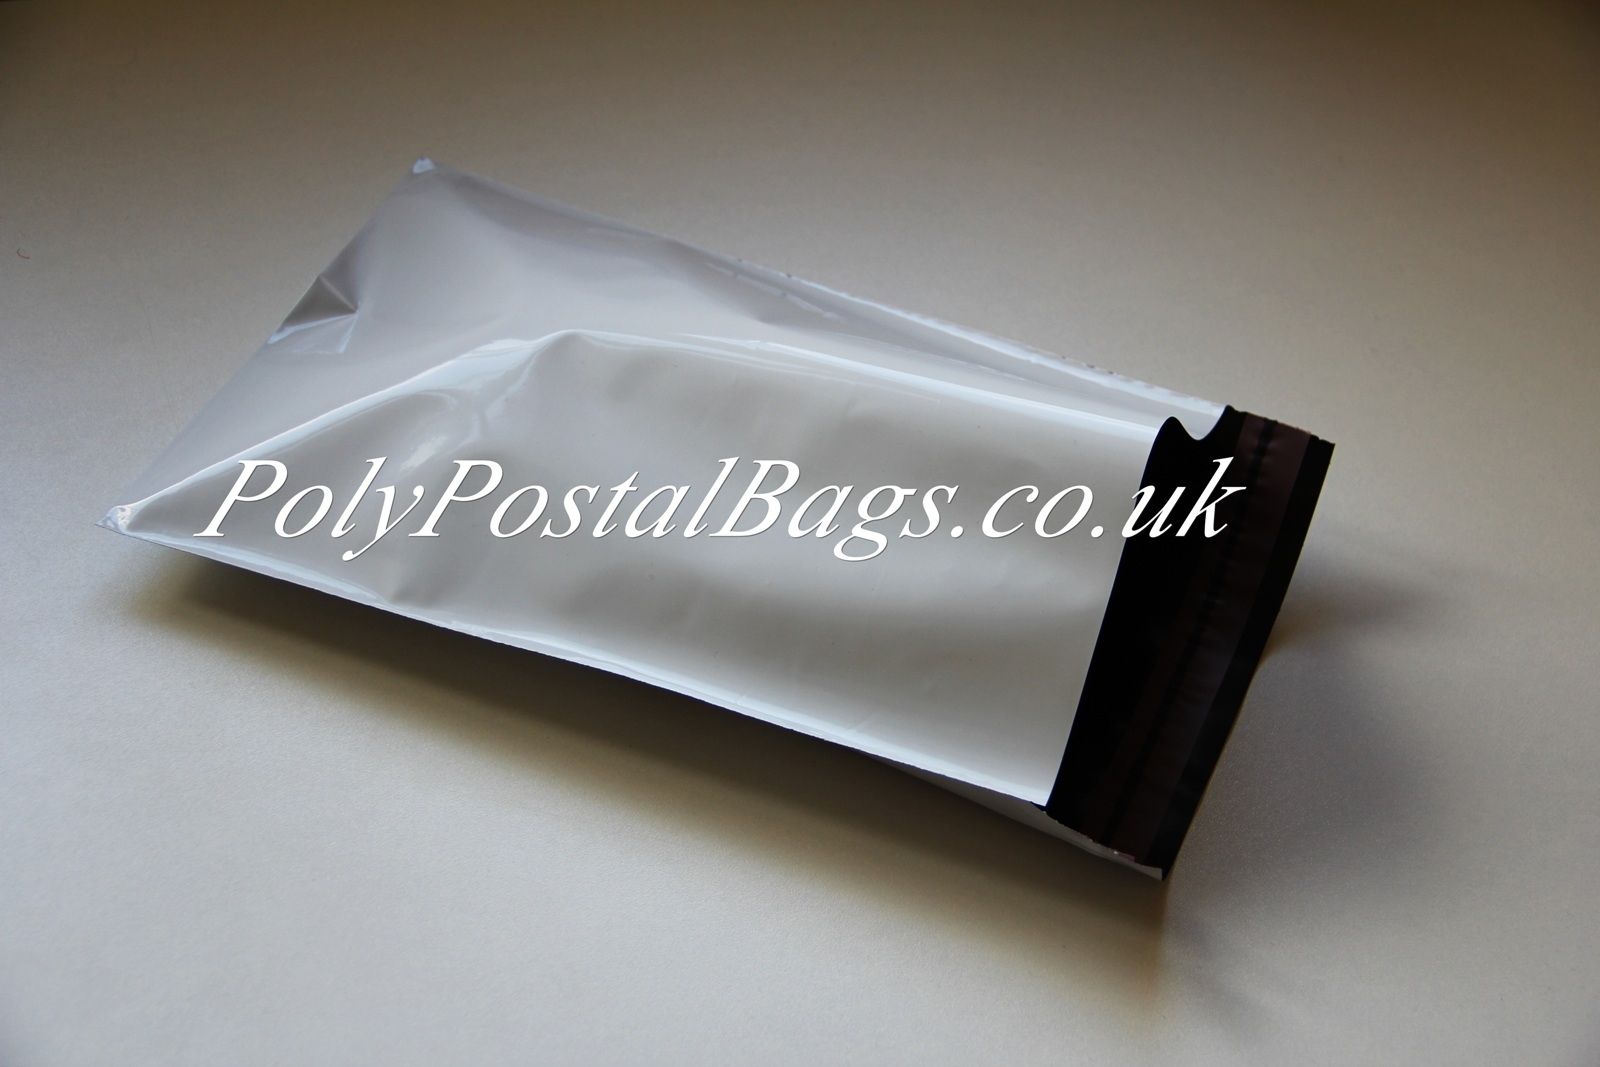 "500x White Mailing Bags 7x9"" - 170x230mm +Lip"